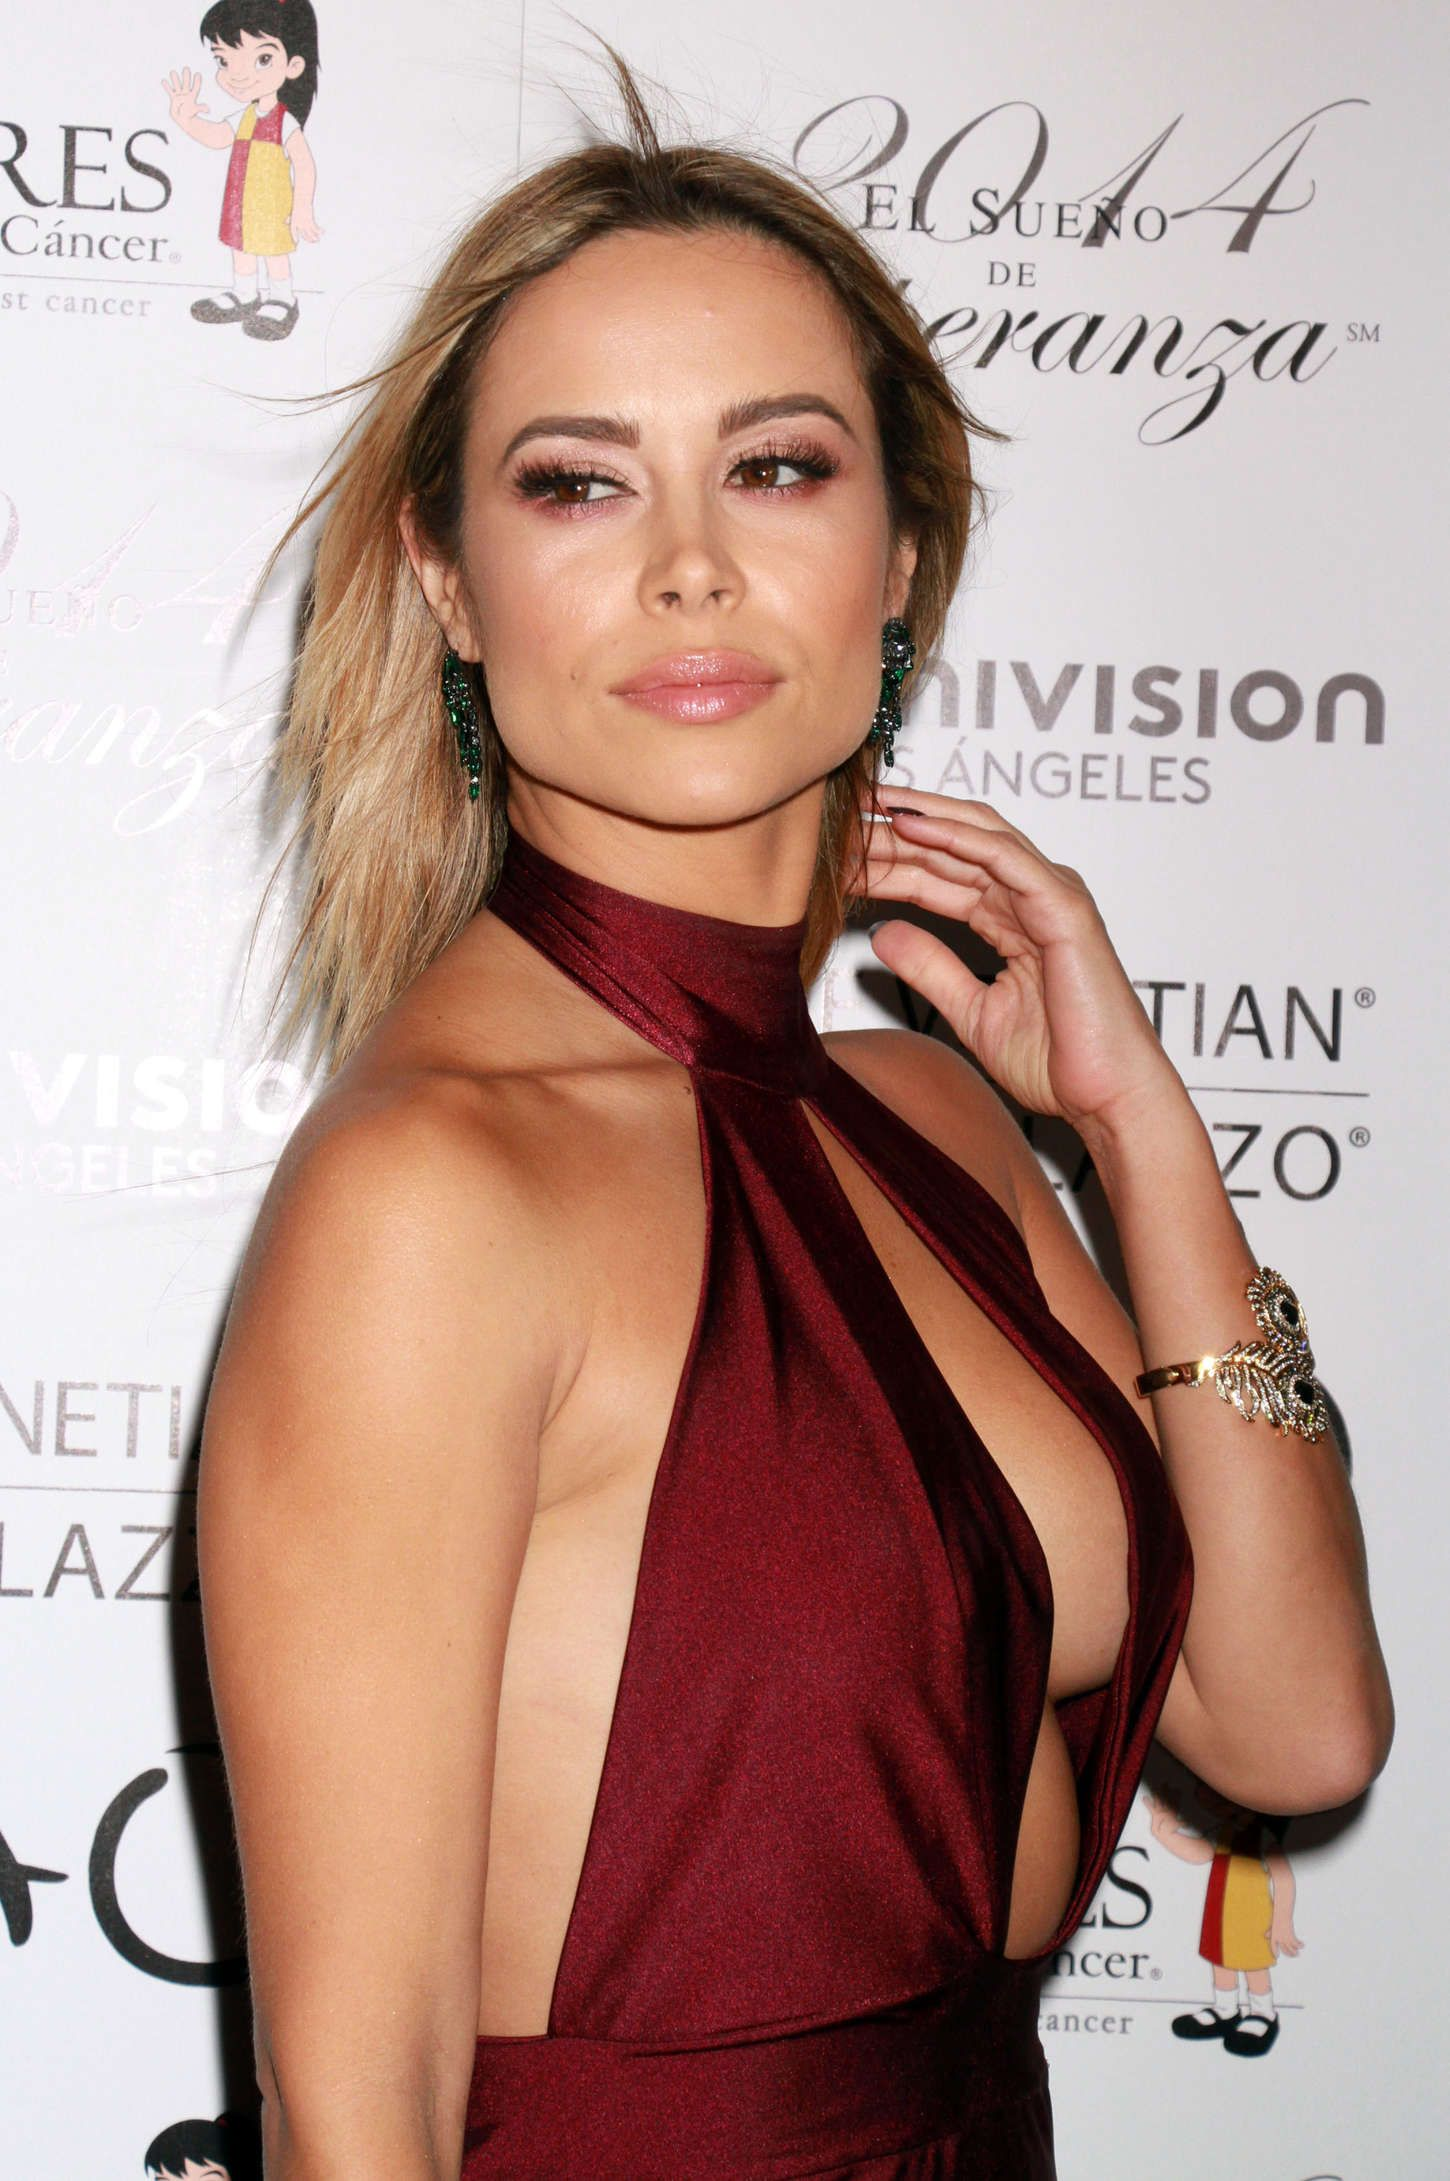 zulay henao wallpaperszulay henao инстаграм, zulay henao vk, zulay henao foto, zulay henao wallpapers, zulay henao imdb, zulay henao forum, zulay henao height, zulay henao filmography, zulay henao family, zulay henao wikipedia, zulay henao максим, zulay henao maxim video, zulay henao фильмы, zulay henao фильмография, zulay henao wiki, zulay henao биография, zulay henao channing tatum, zulay henao film, зулай хенао фильмография